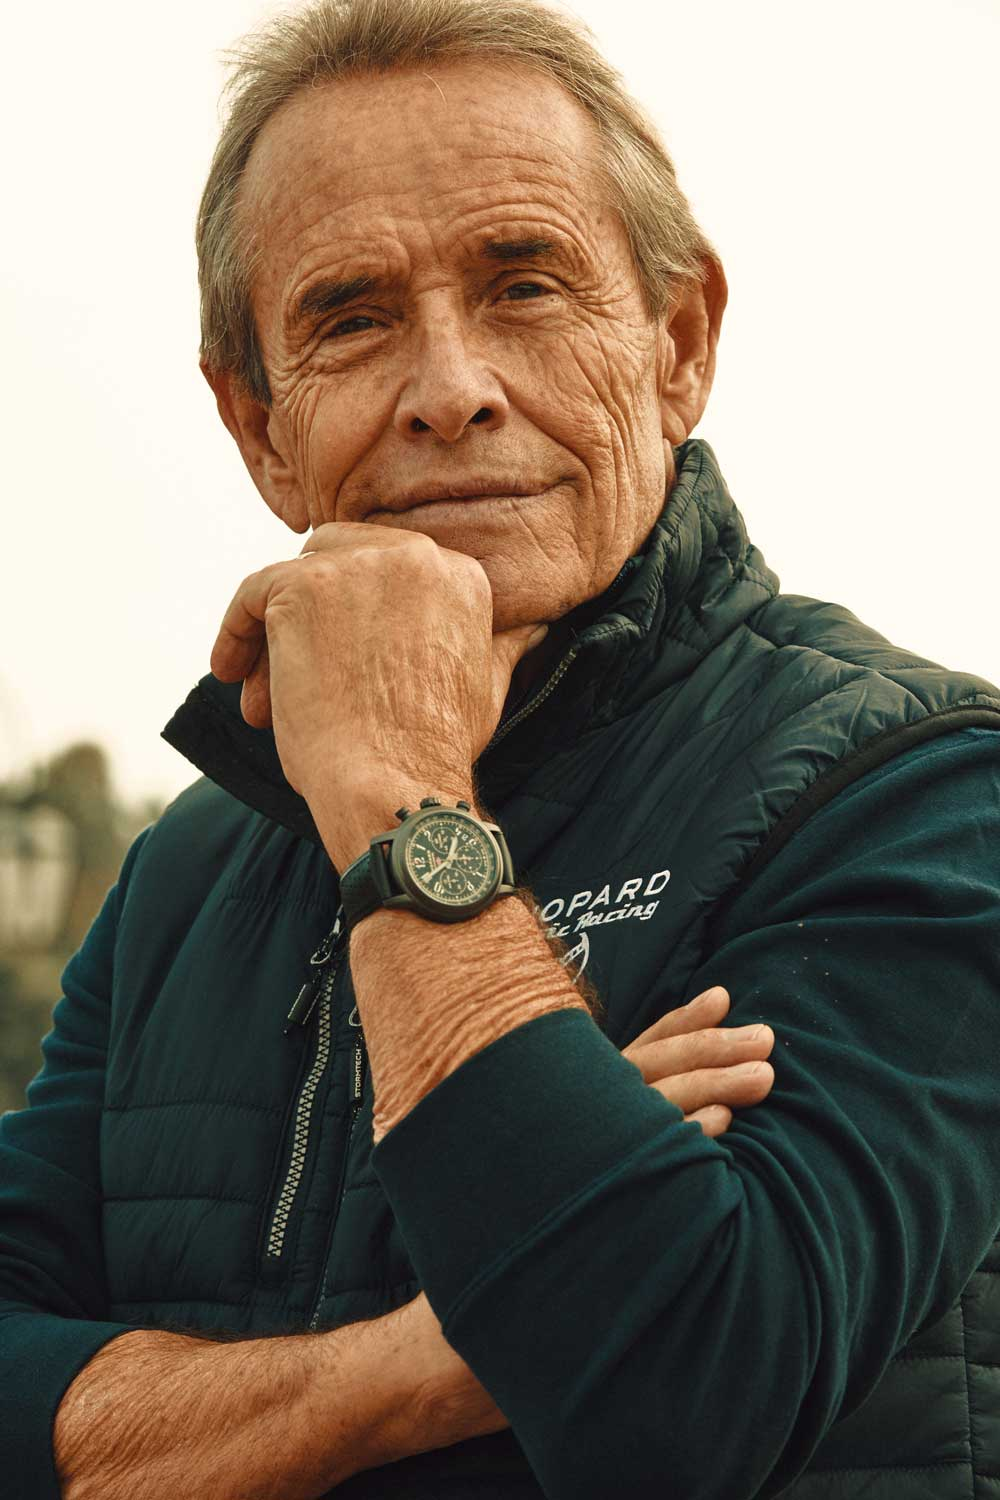 Jacky Ickx wearing the Mille Miglia Racing Edition (Photo by Adam Fussell)